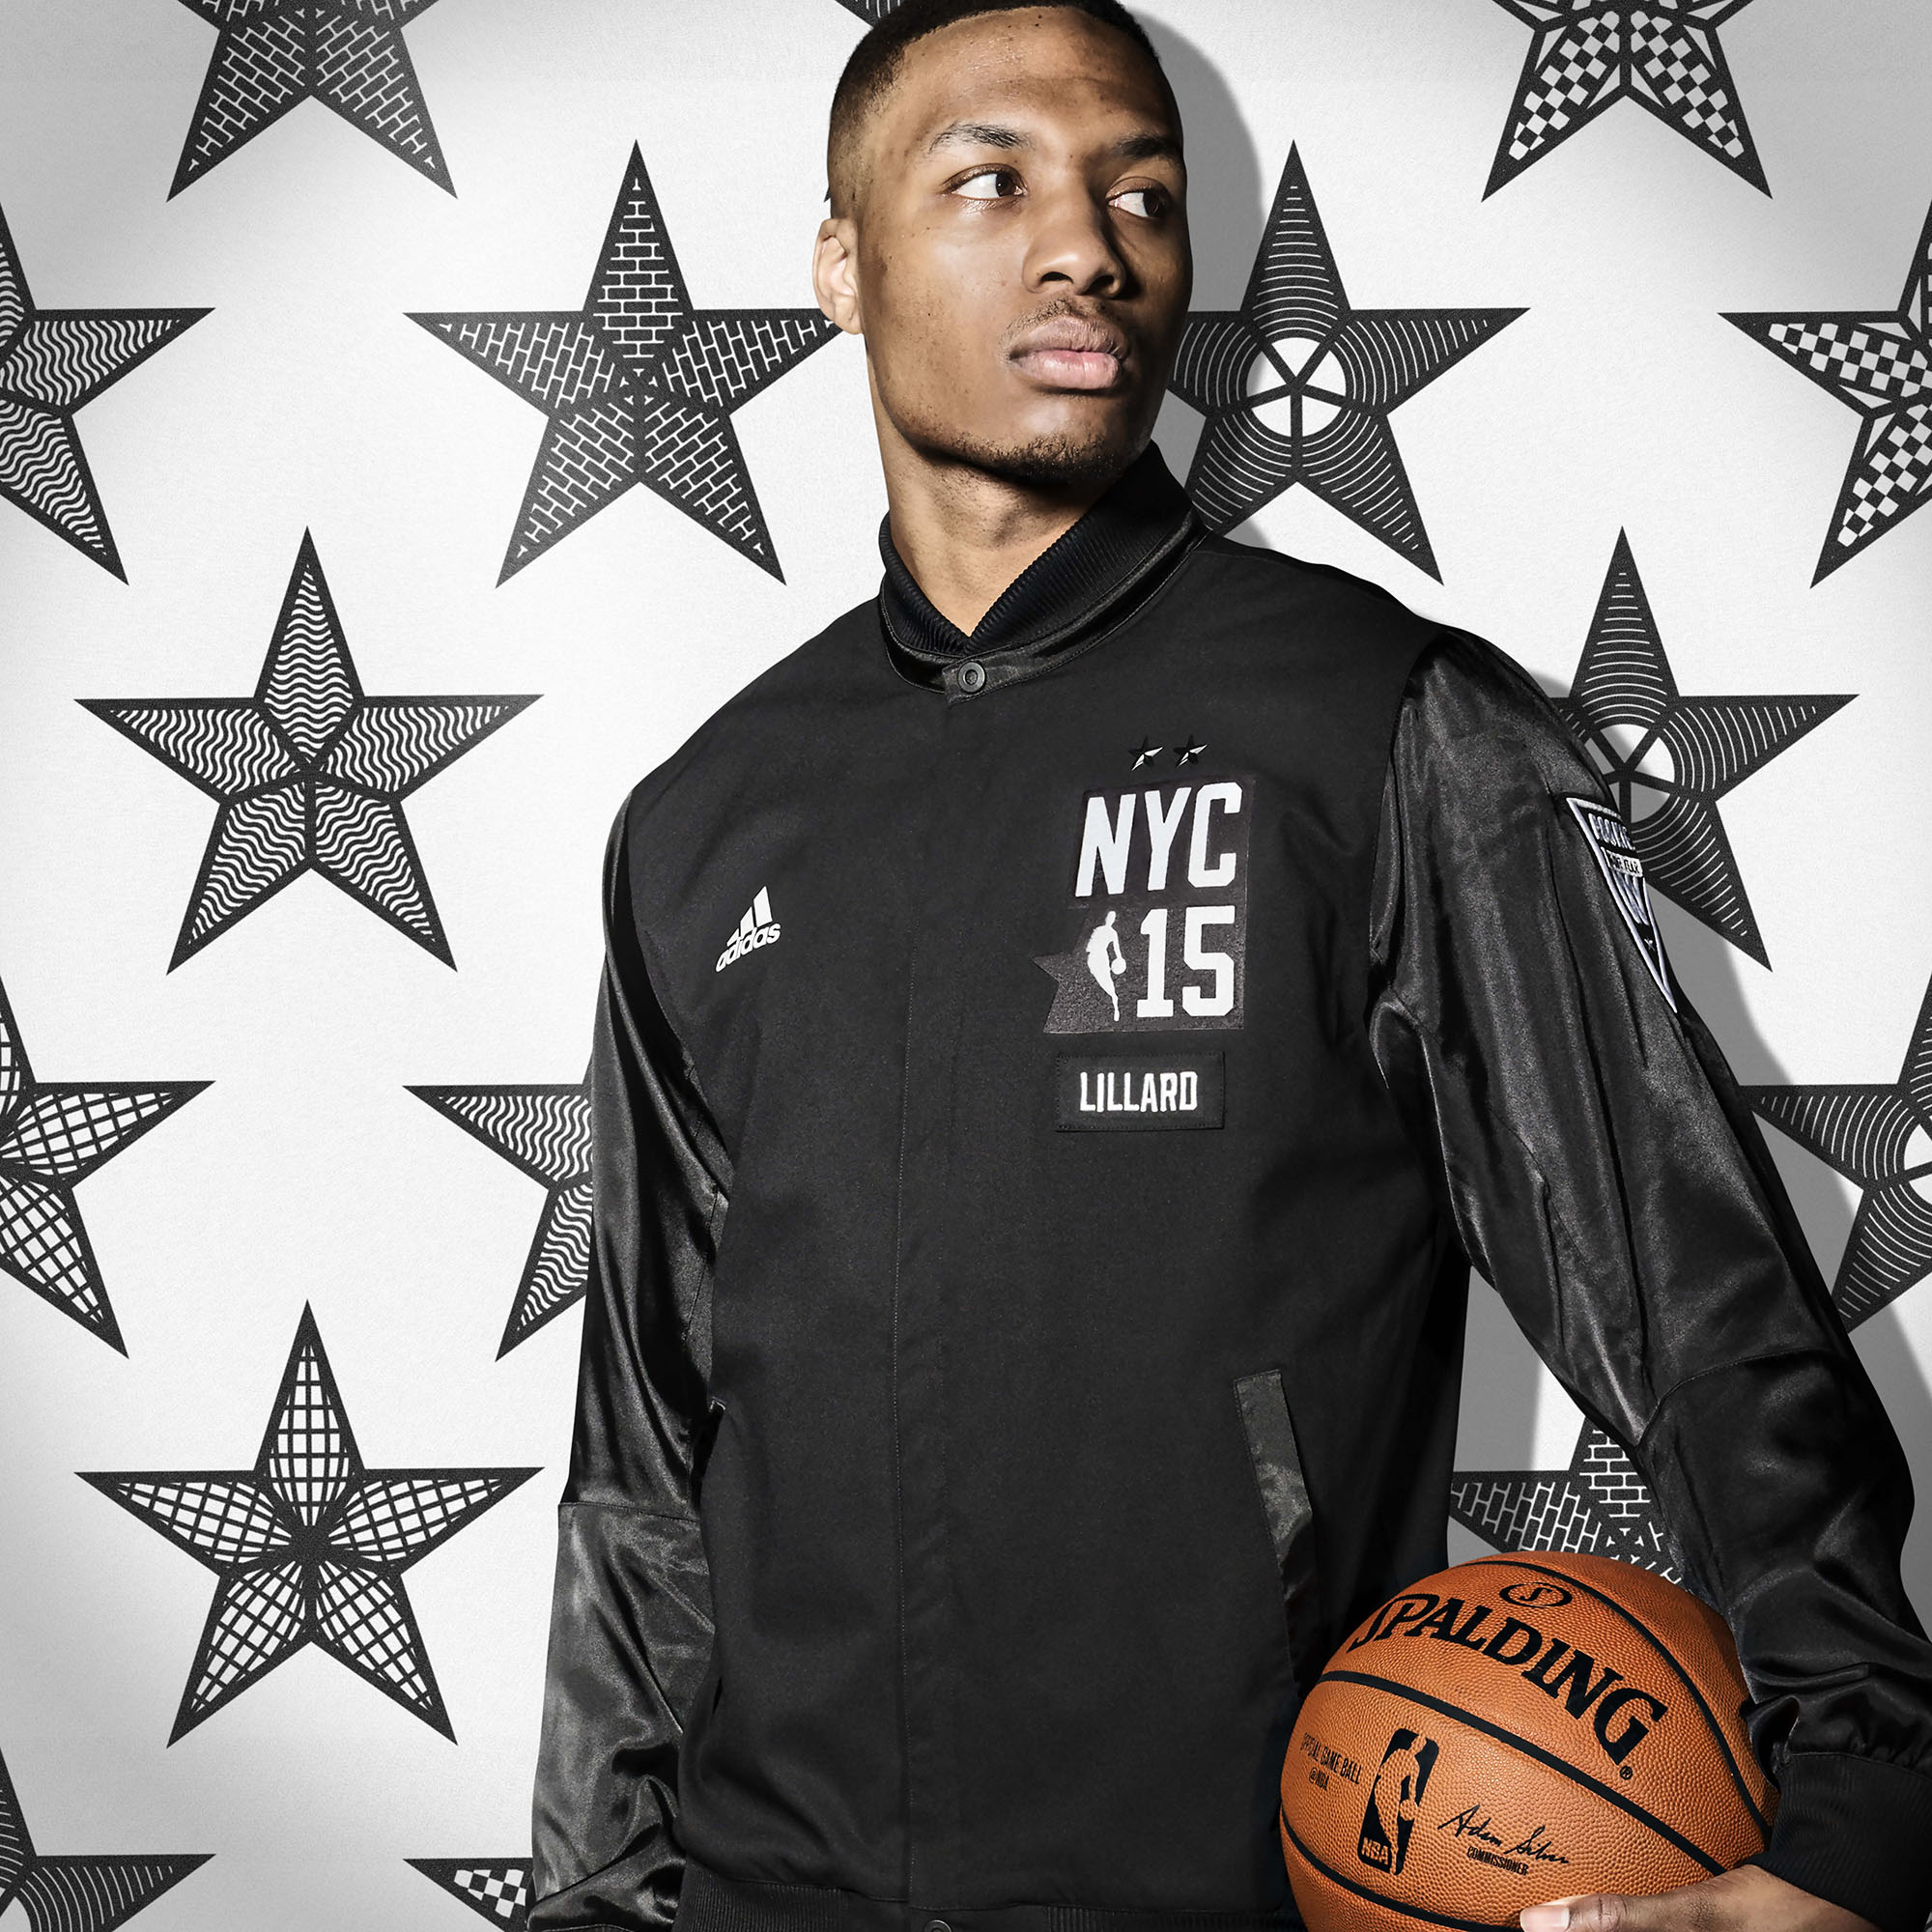 Damian Lillard: Damian Lillard All-Star Images